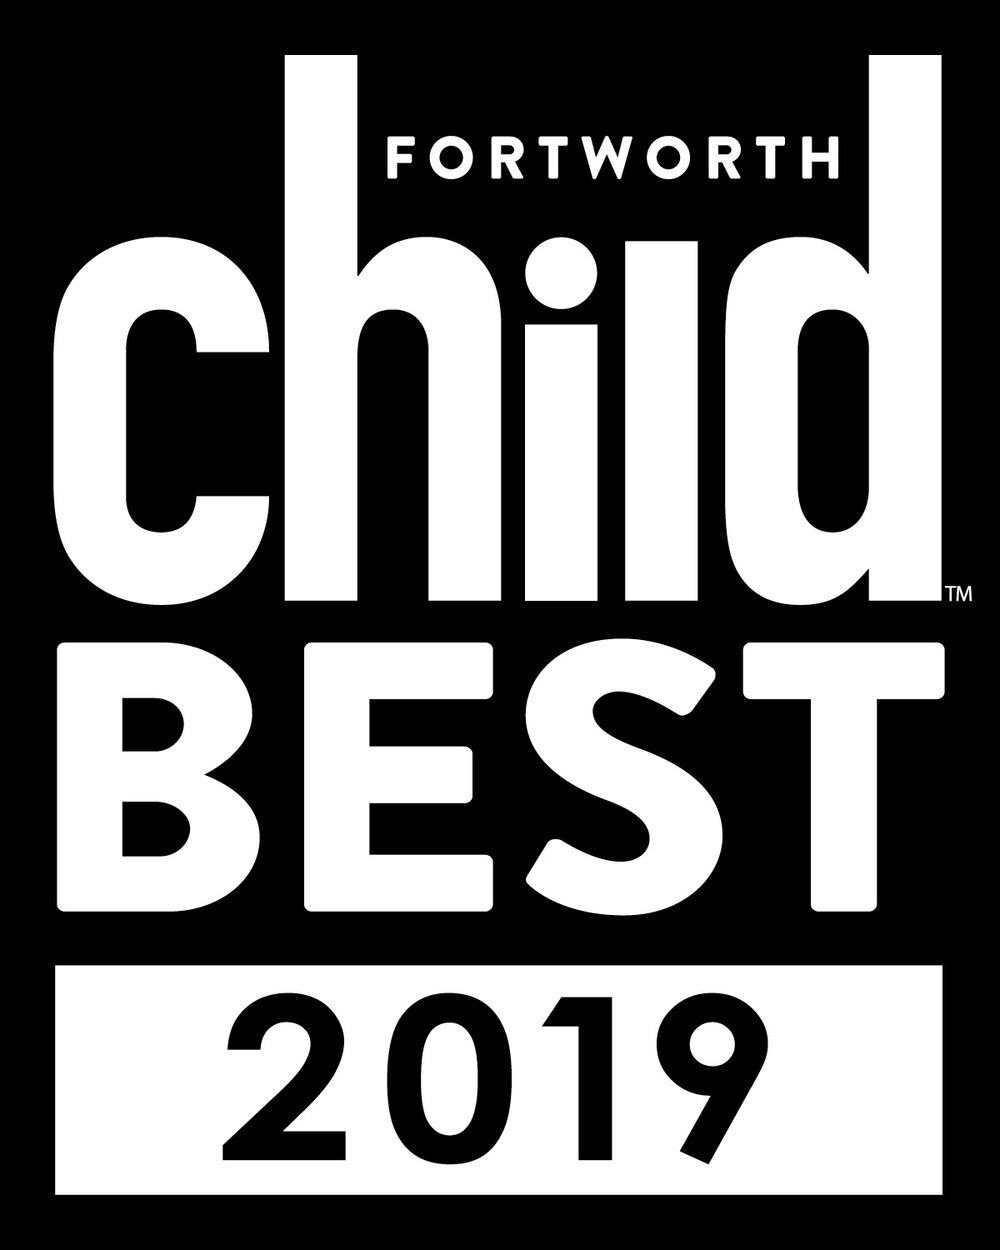 Best Doula  and Childbirth Class in Fort Worth 2019.jpg